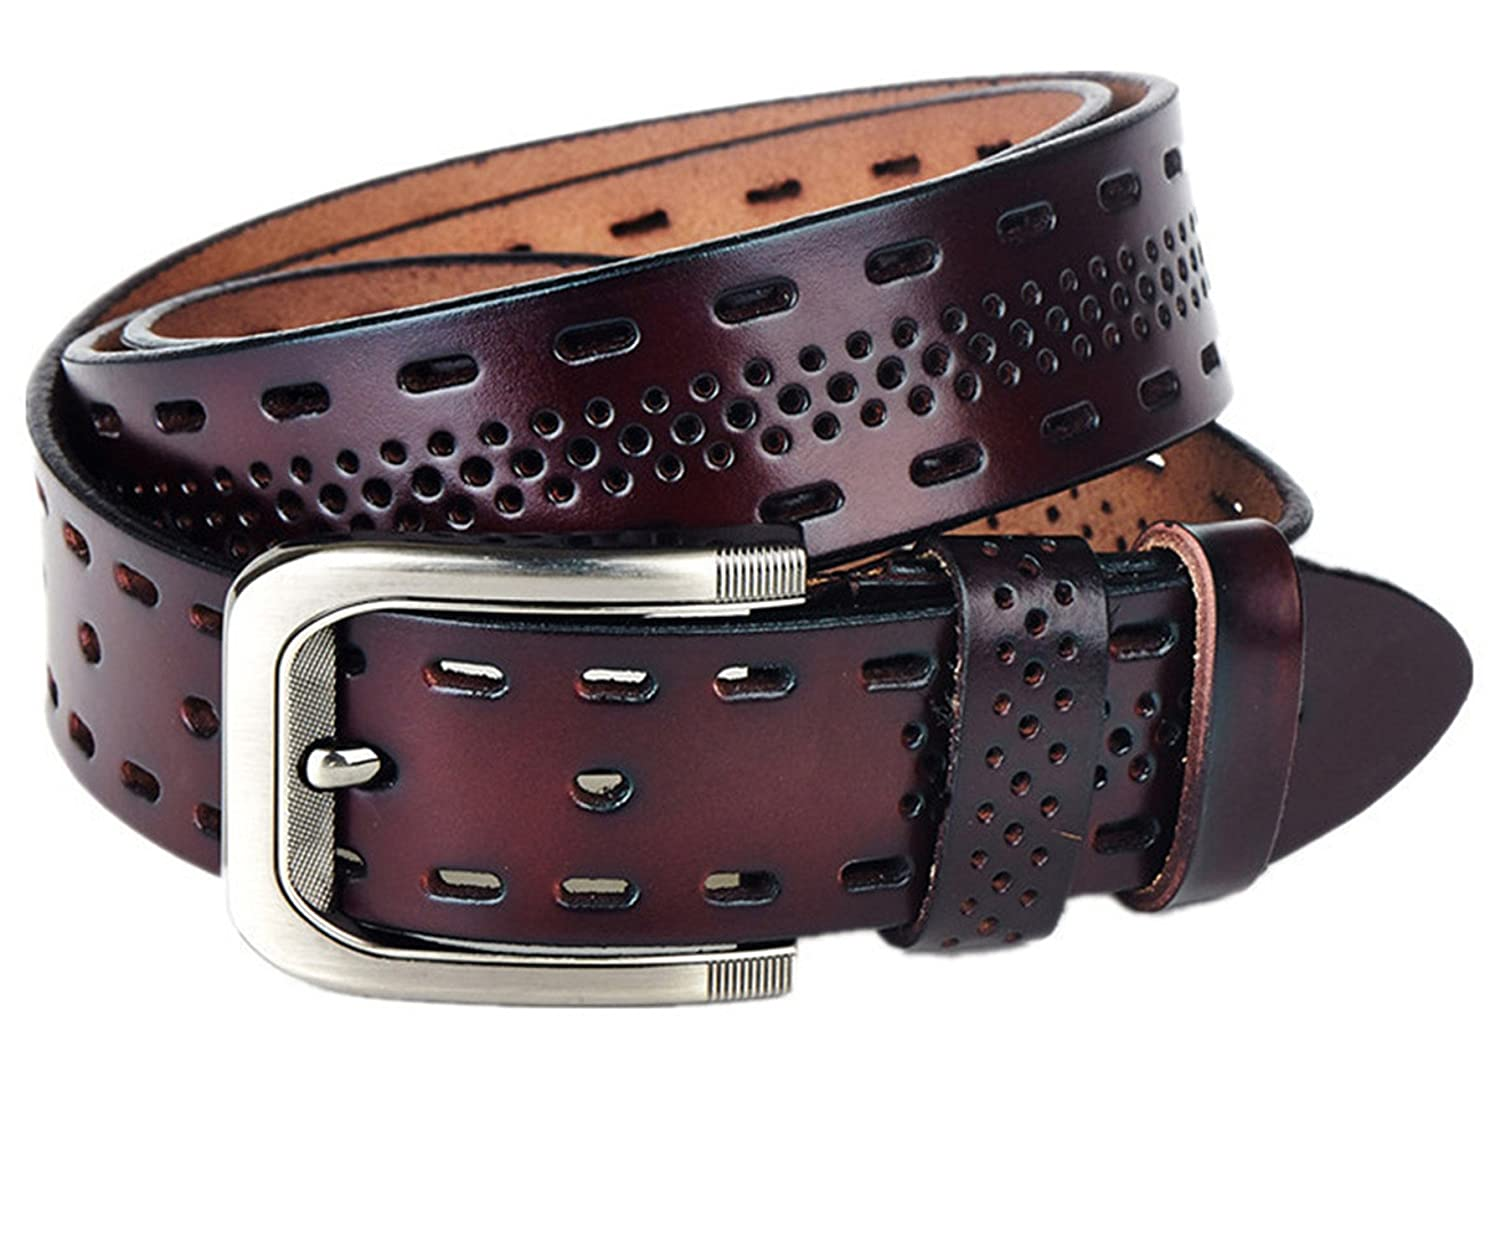 TOGIC Fashion Mens Belts,Casual Design Mensollow Ventilate Belt For Men,Hip Jeans Belts Q3